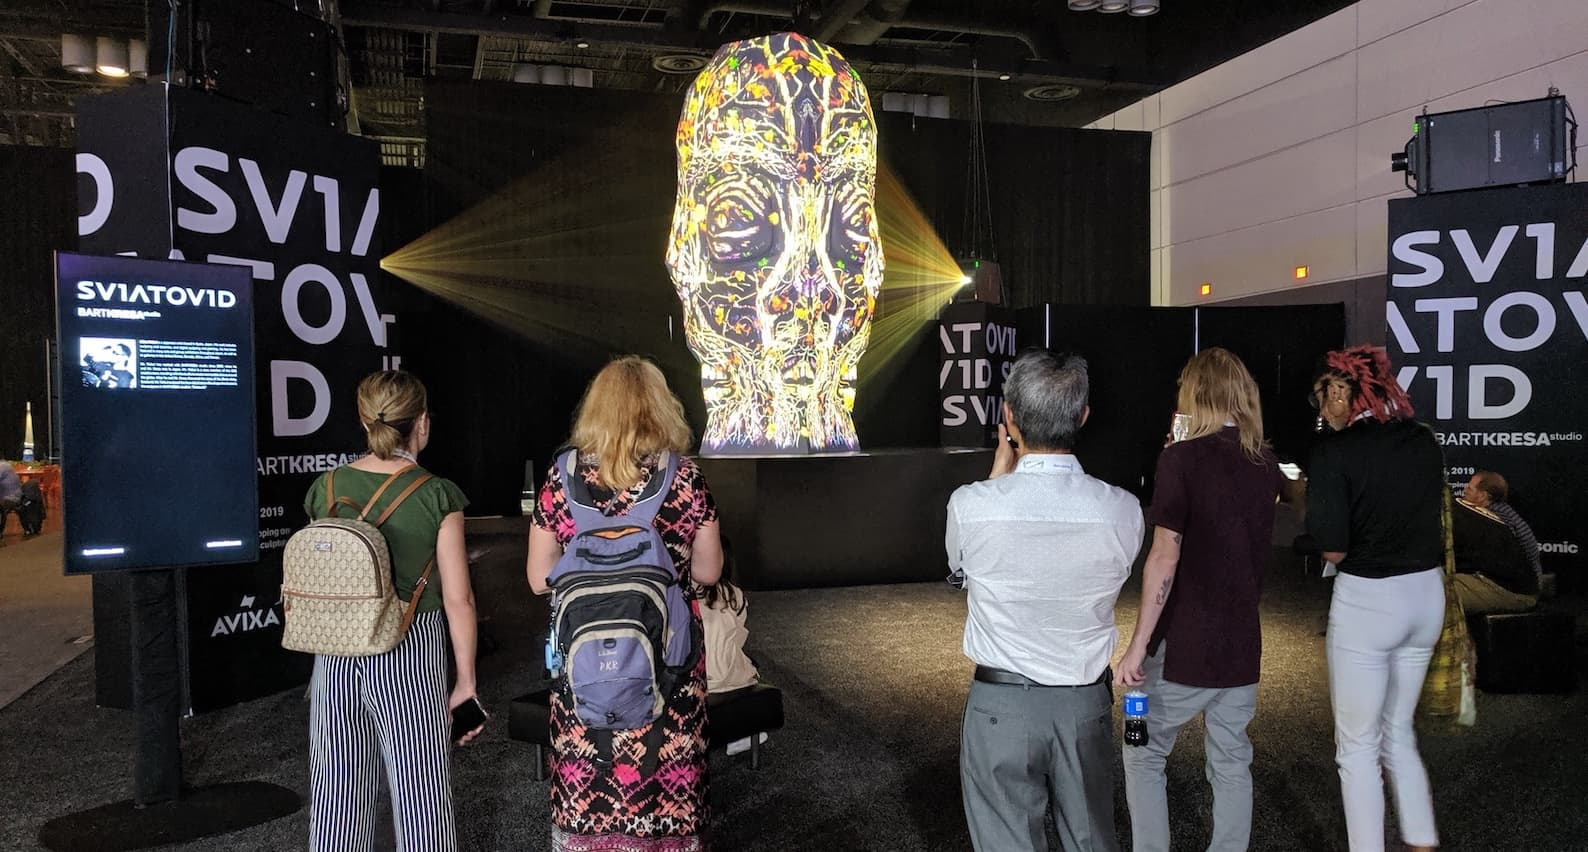 visitors watch Bart Kresa's Sviatovid projection mapping sculpture at infocomm 2019 copy